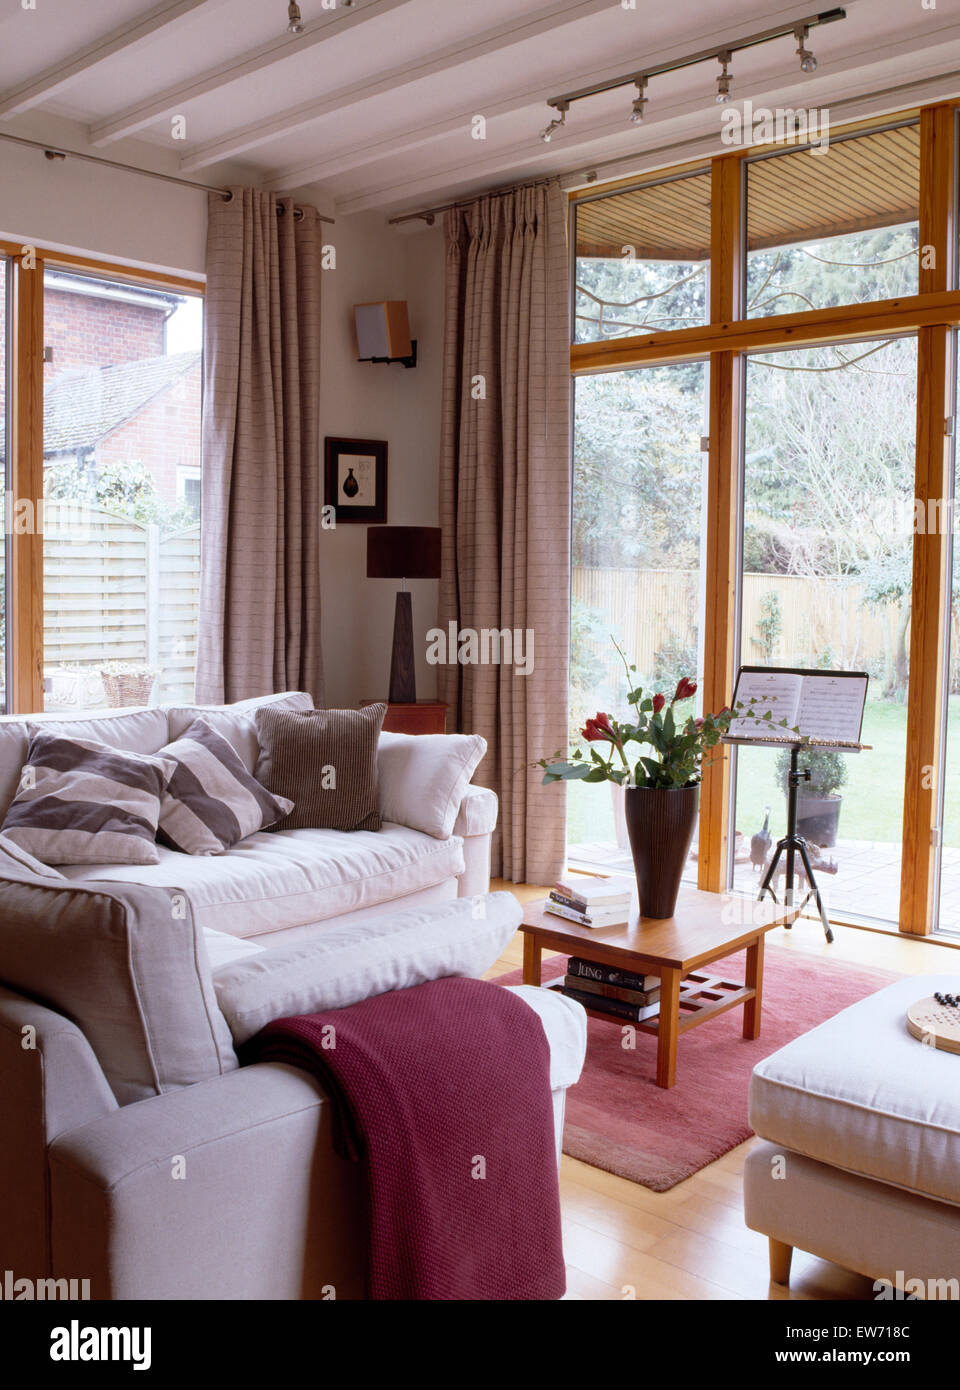 White sofas in modern living room extension with glass doors to the garden - Stock Image